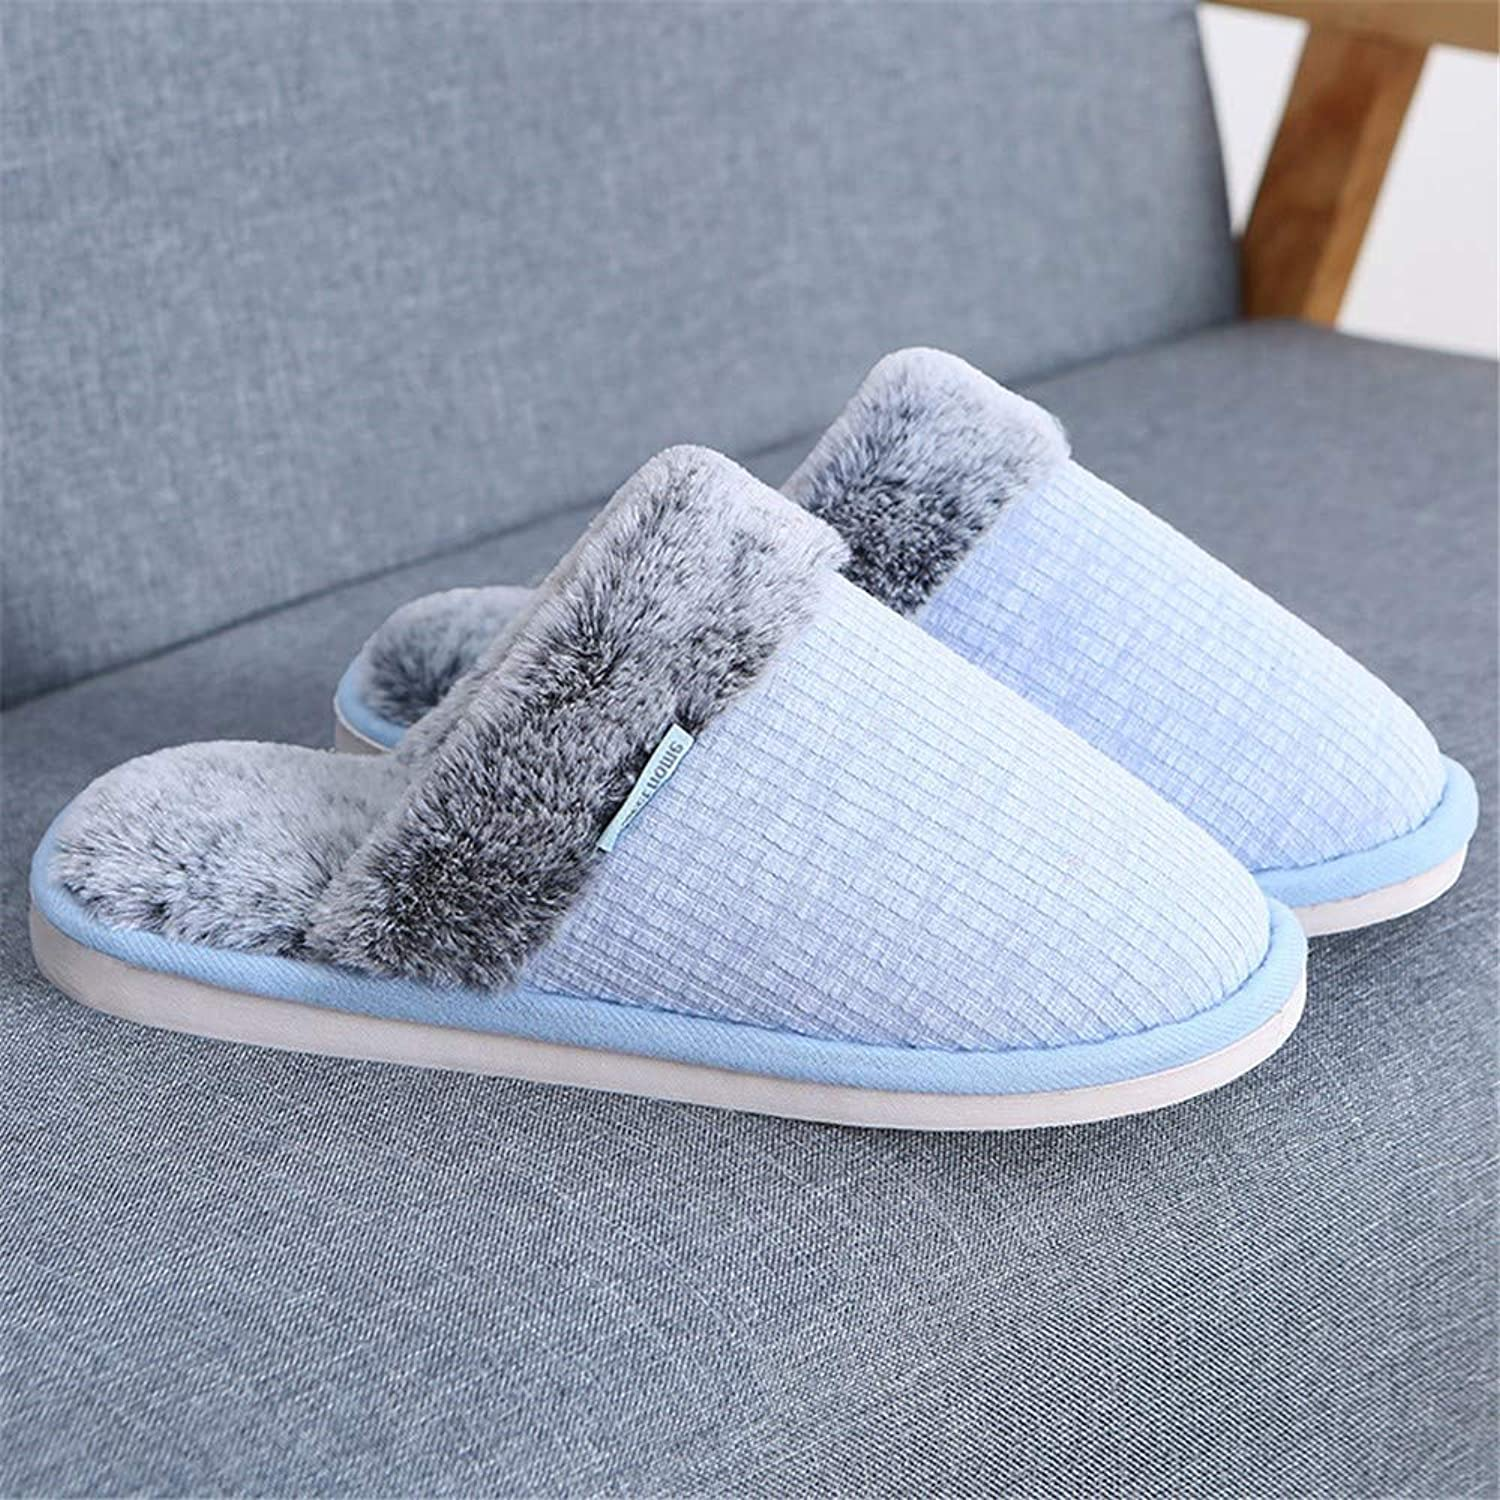 NIGHT WALL Comfortable Slip-on Winter Winter Couple Cotton Slippers Thick Warm Men and Women Indoor Non-Slip Platform shoesHouse shoes Indoor & Outdoor